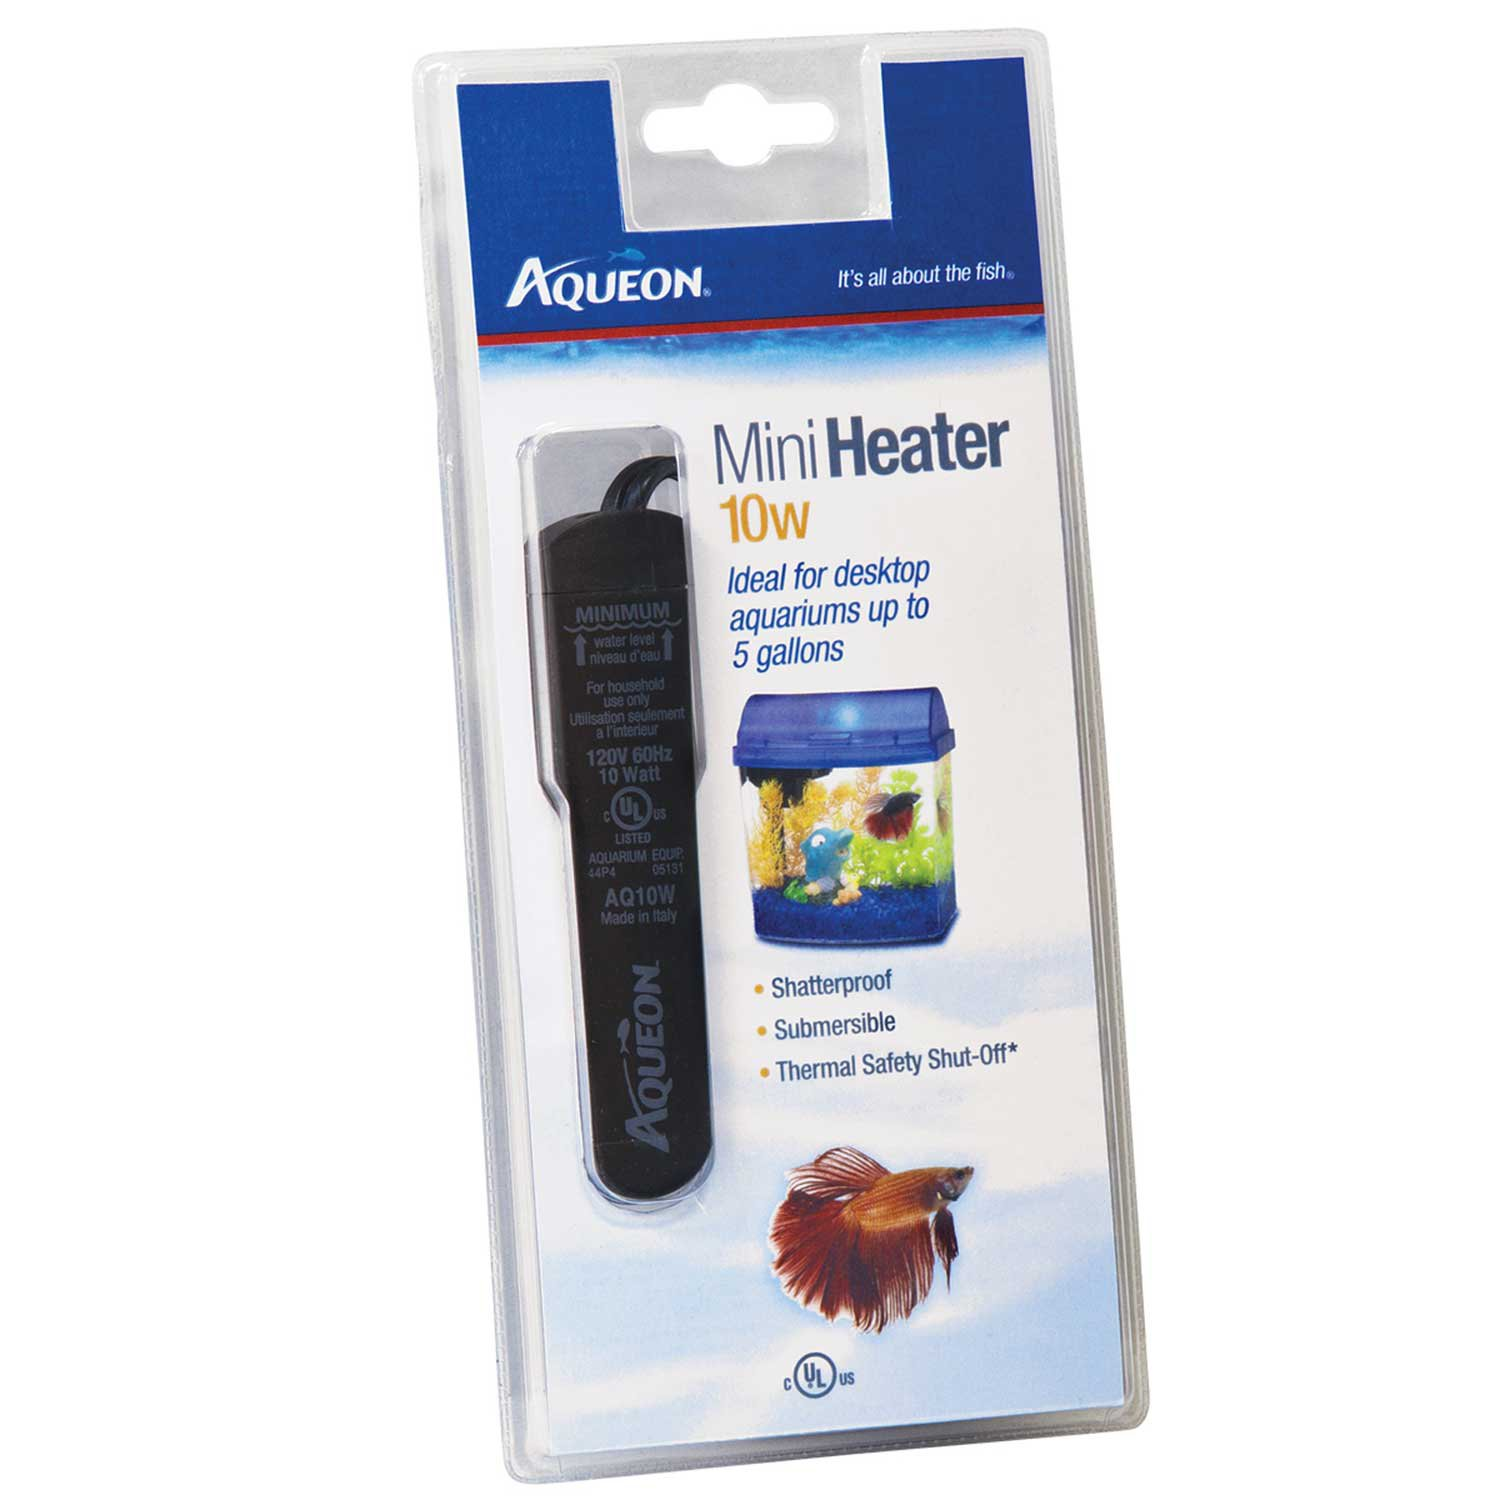 Aqueon submersible aquarium heater 10w petco for Petco fish tank filters